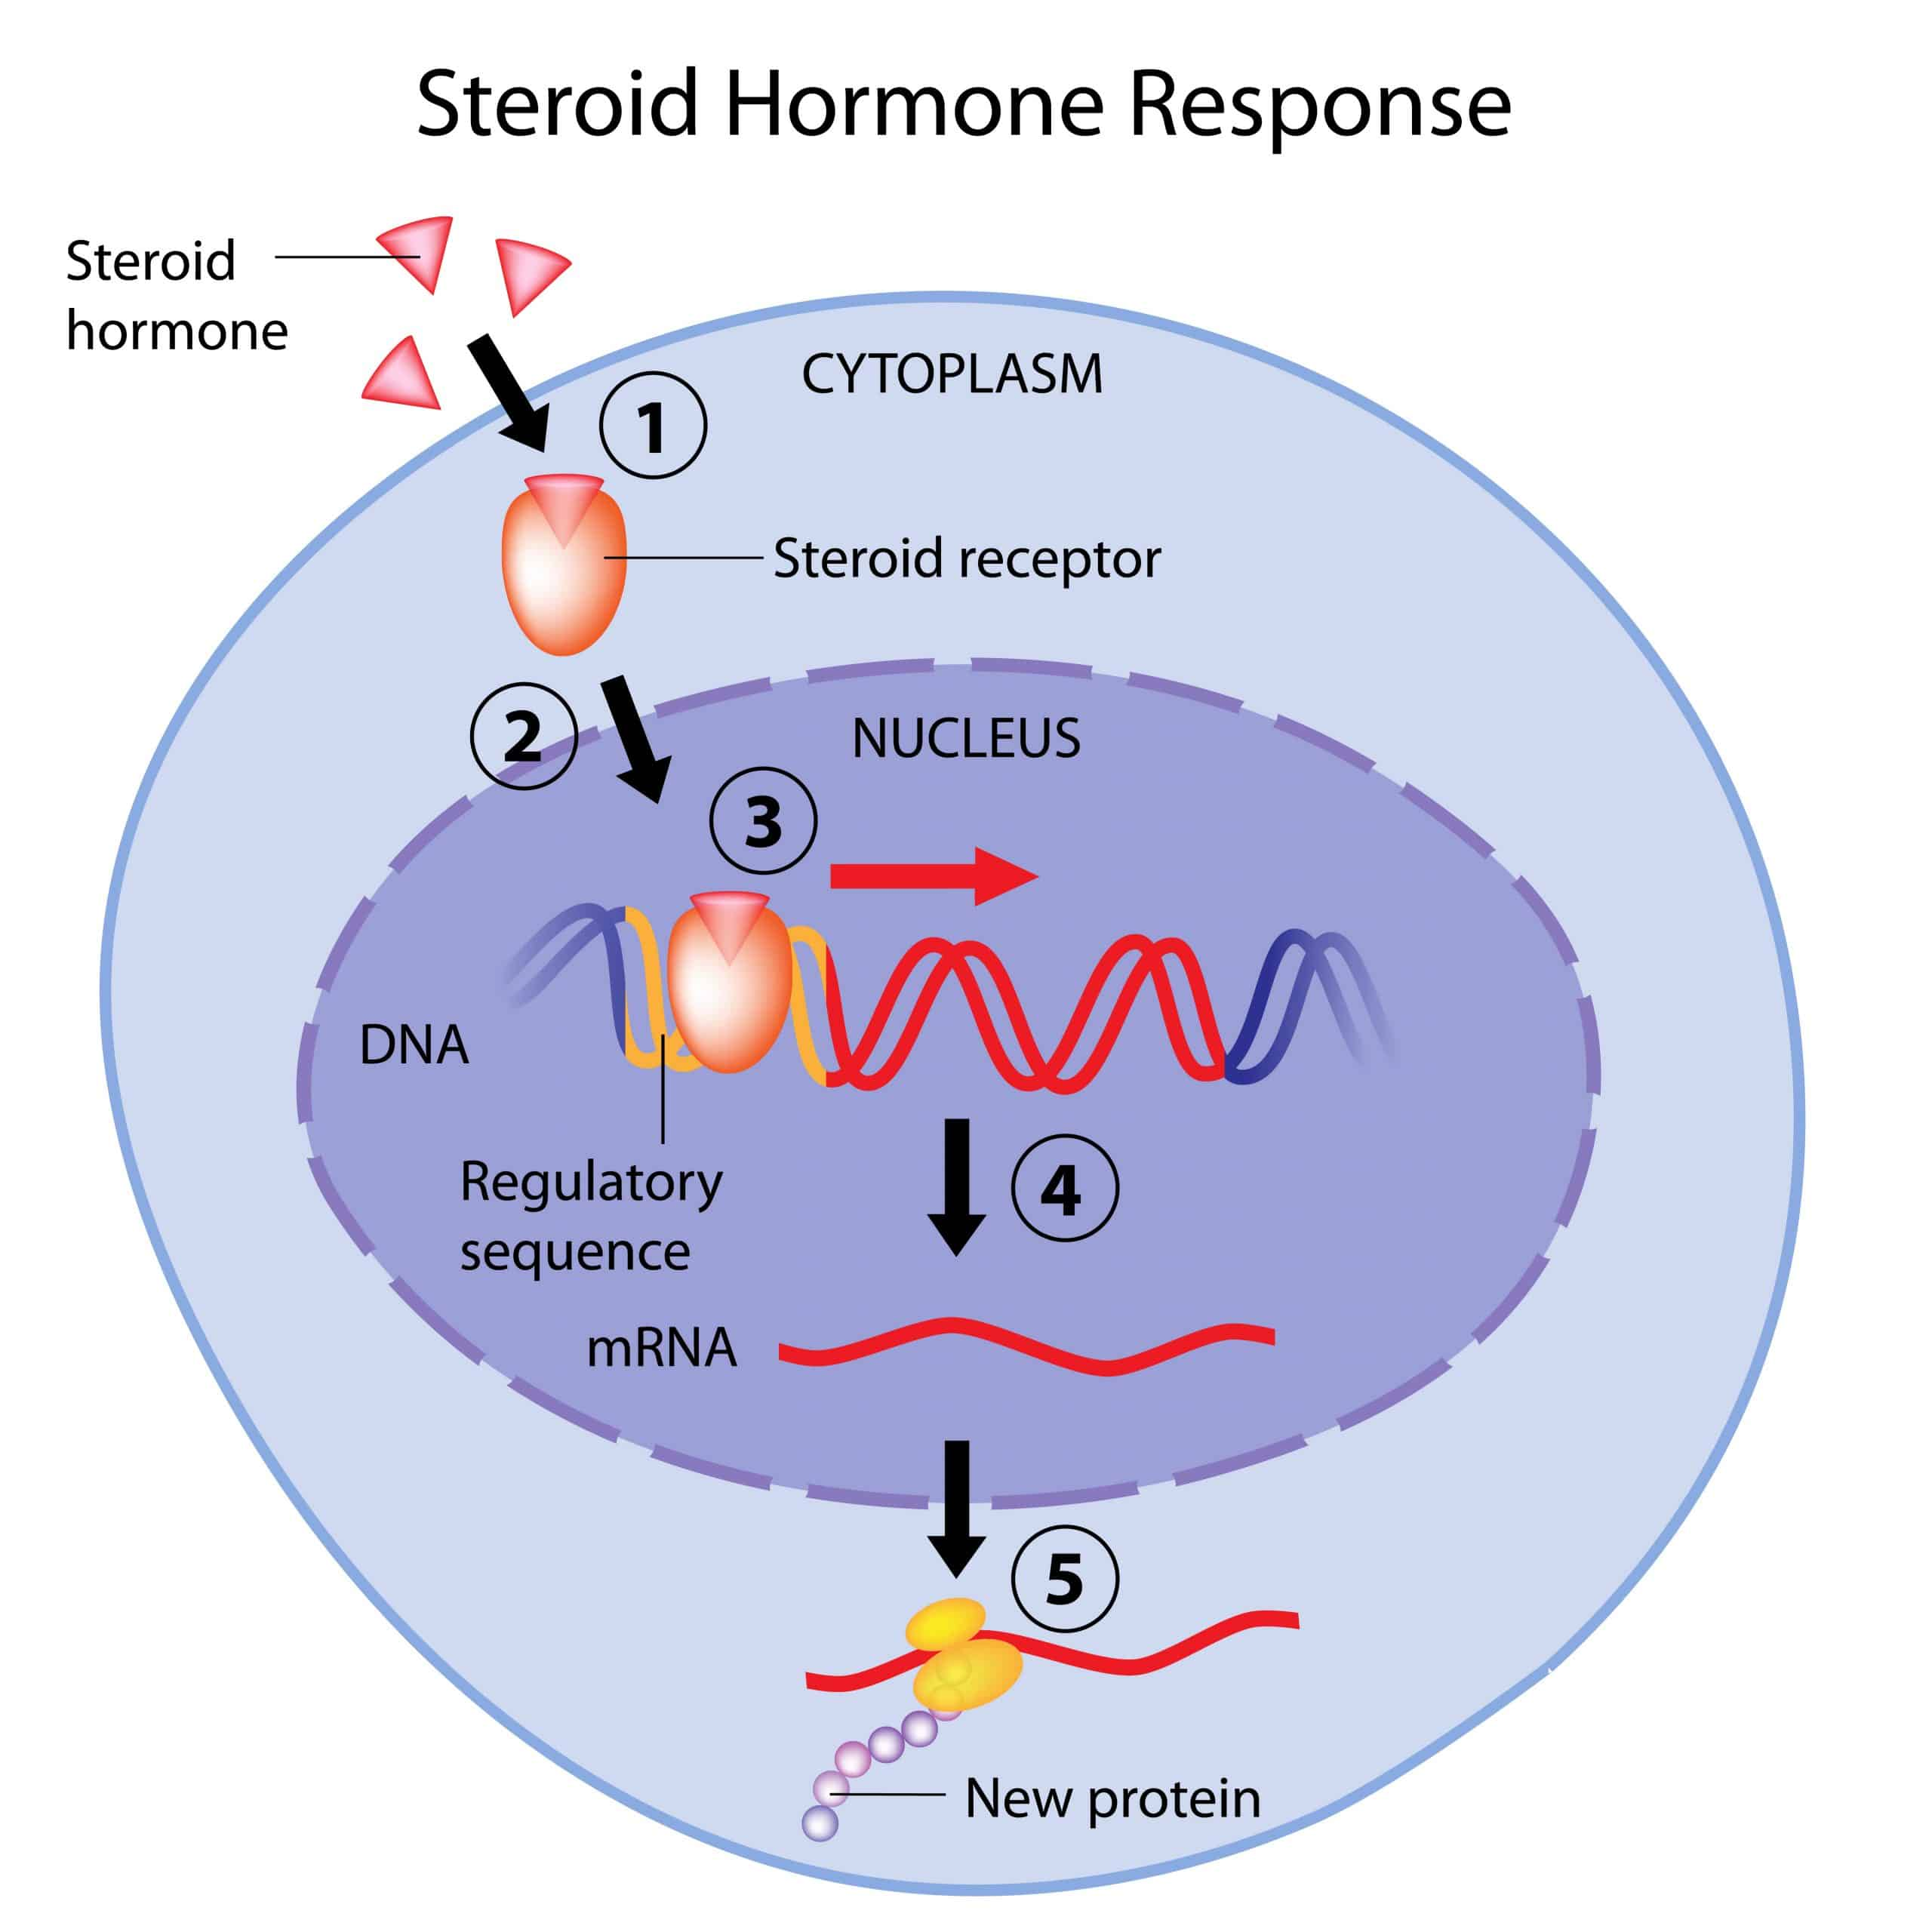 Diagram showing how steroids bind with hormone receptors